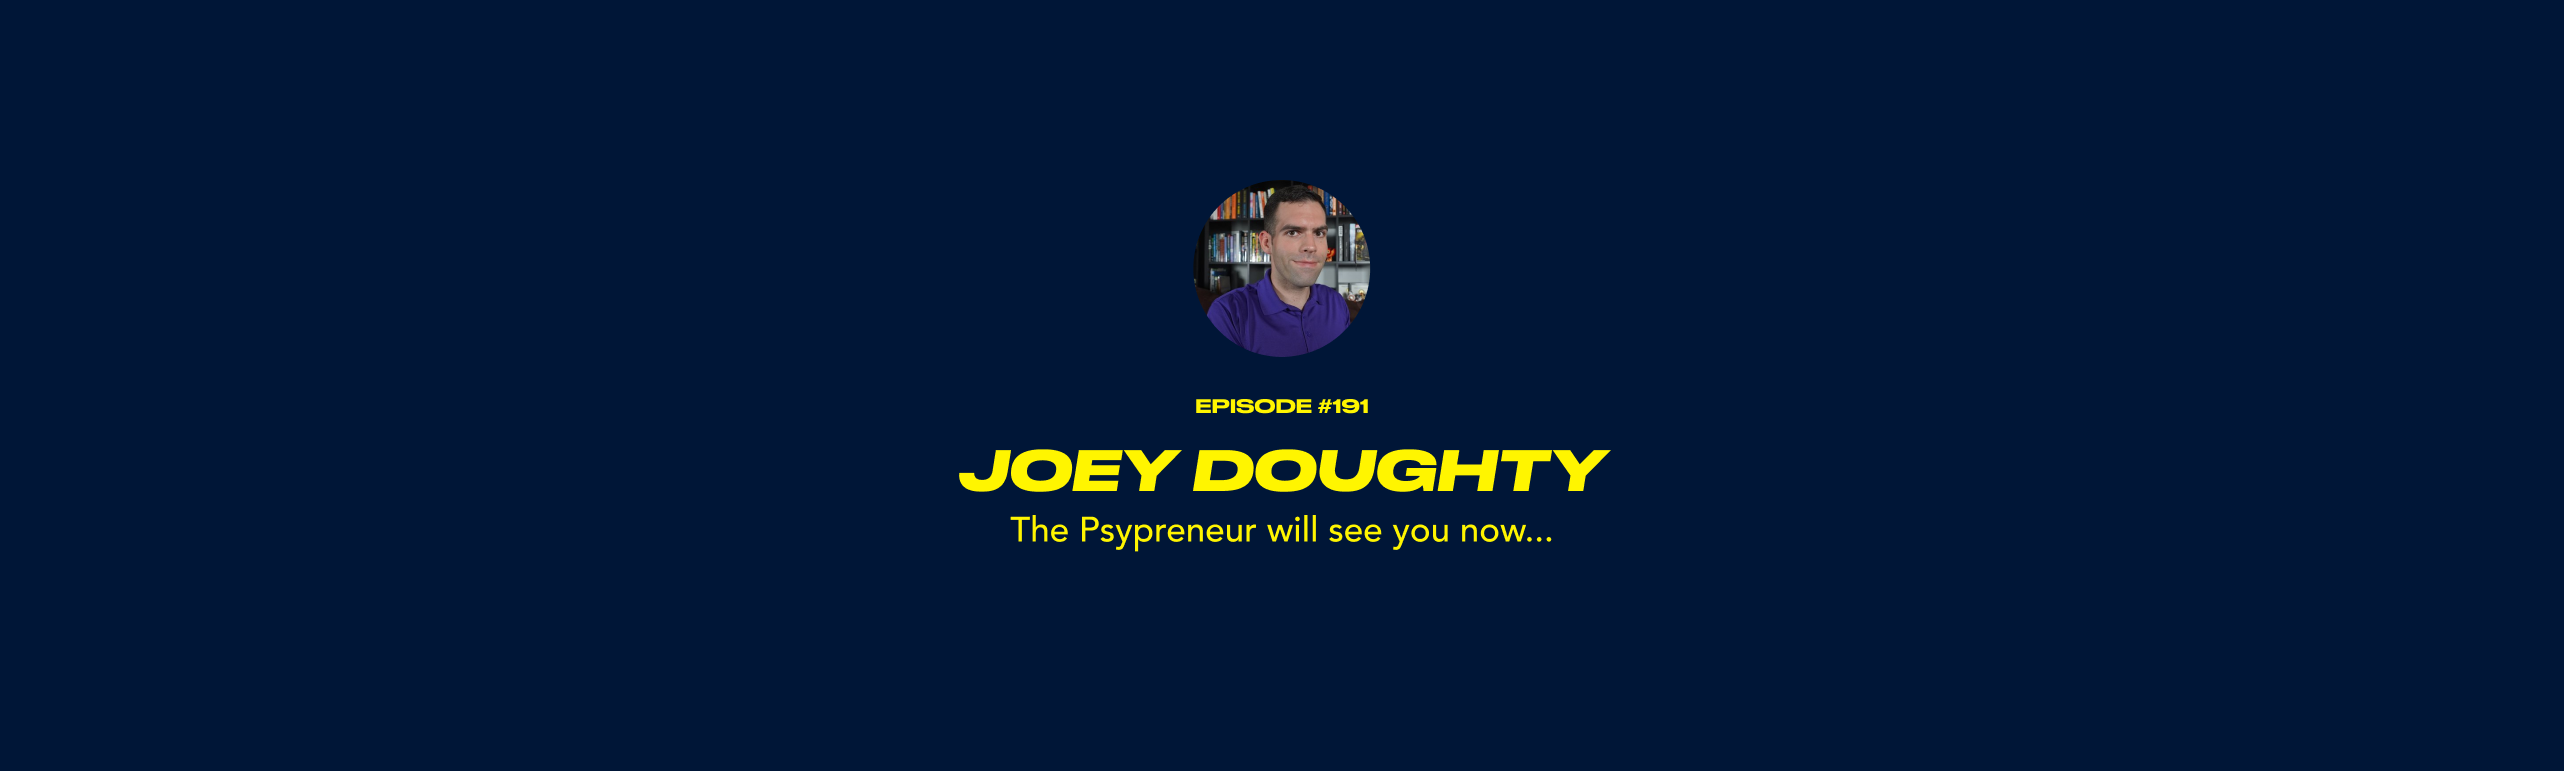 Joey Doughty - The Psypreneur will see you now...